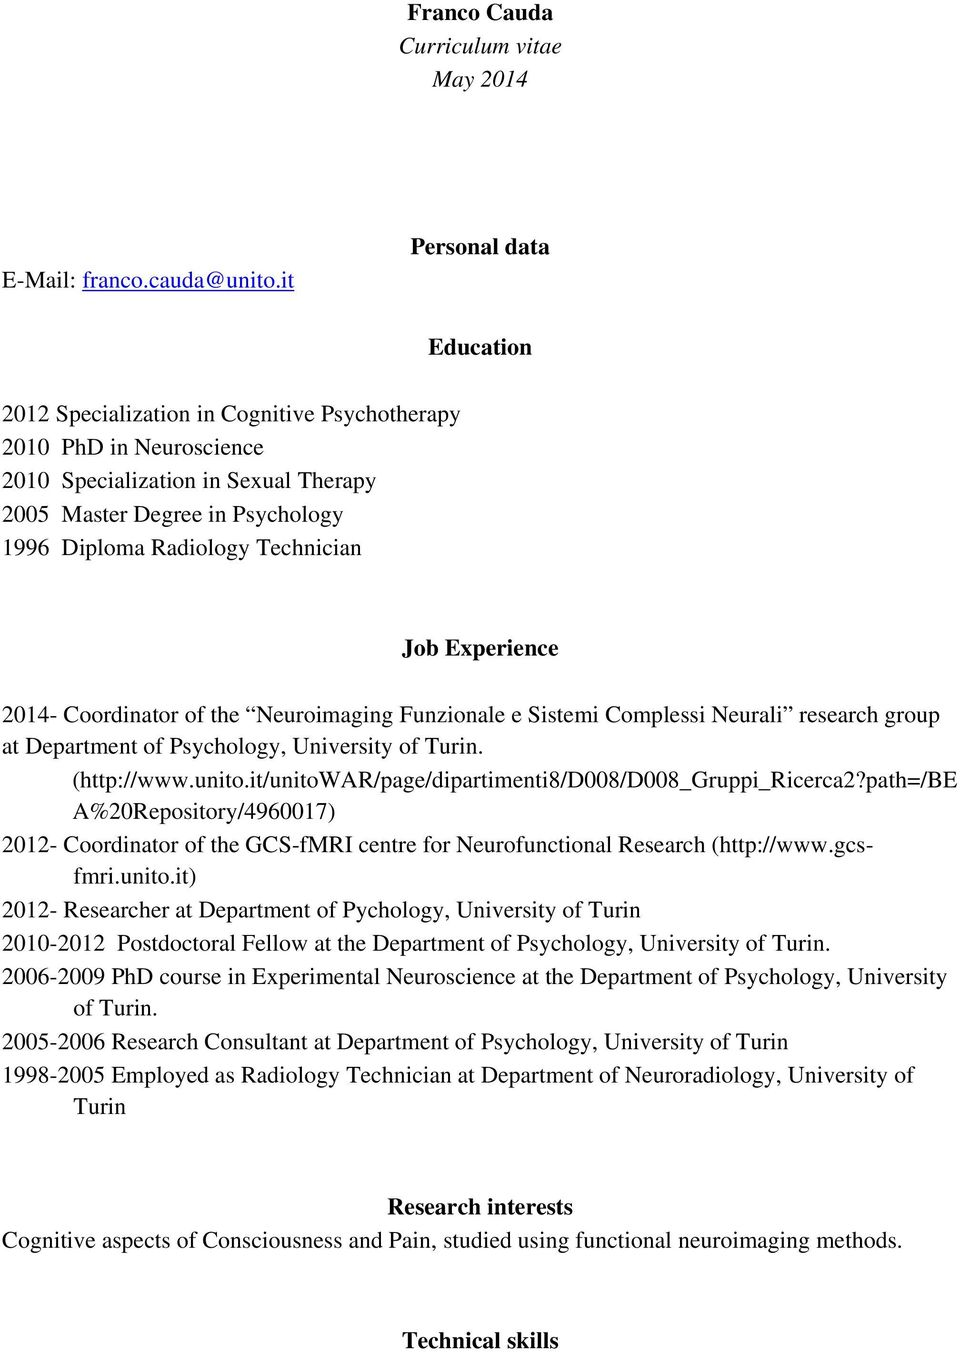 Technician Job Experience 2014- Coordinator of the Neuroimaging Funzionale e Sistemi Complessi Neurali research group at Department of Psychology, University of Turin. (http://www.unito.